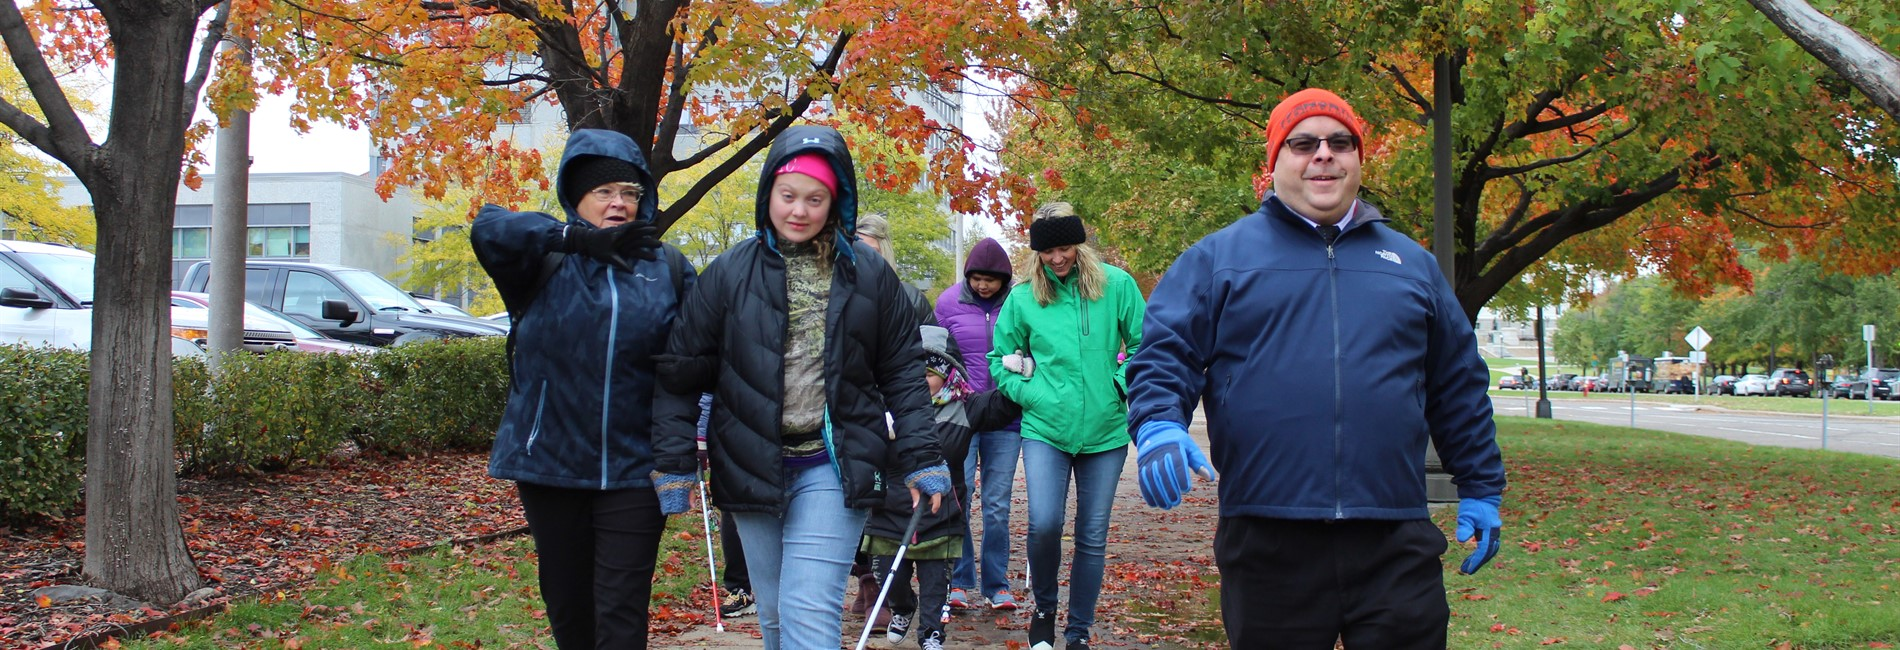 A group of people using white canes walking down a sidewalk with fall foliage in the background